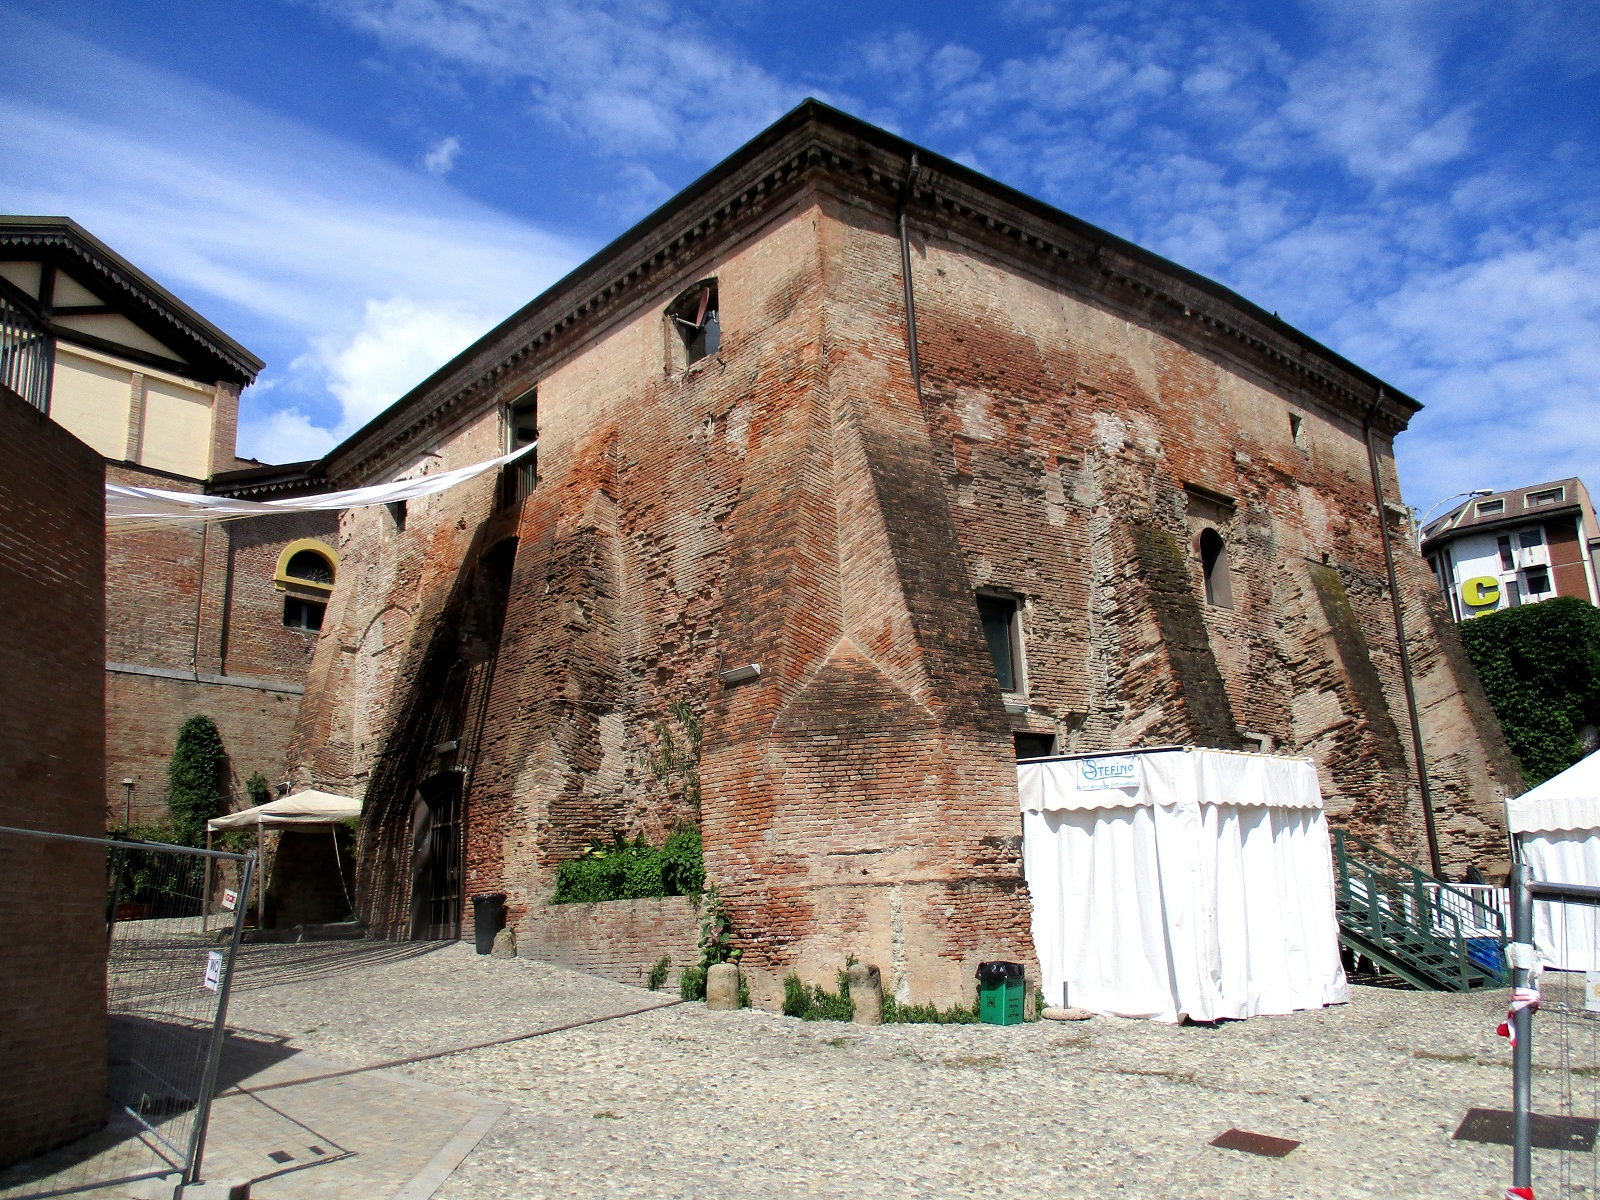 The Best of Bologna - Salara